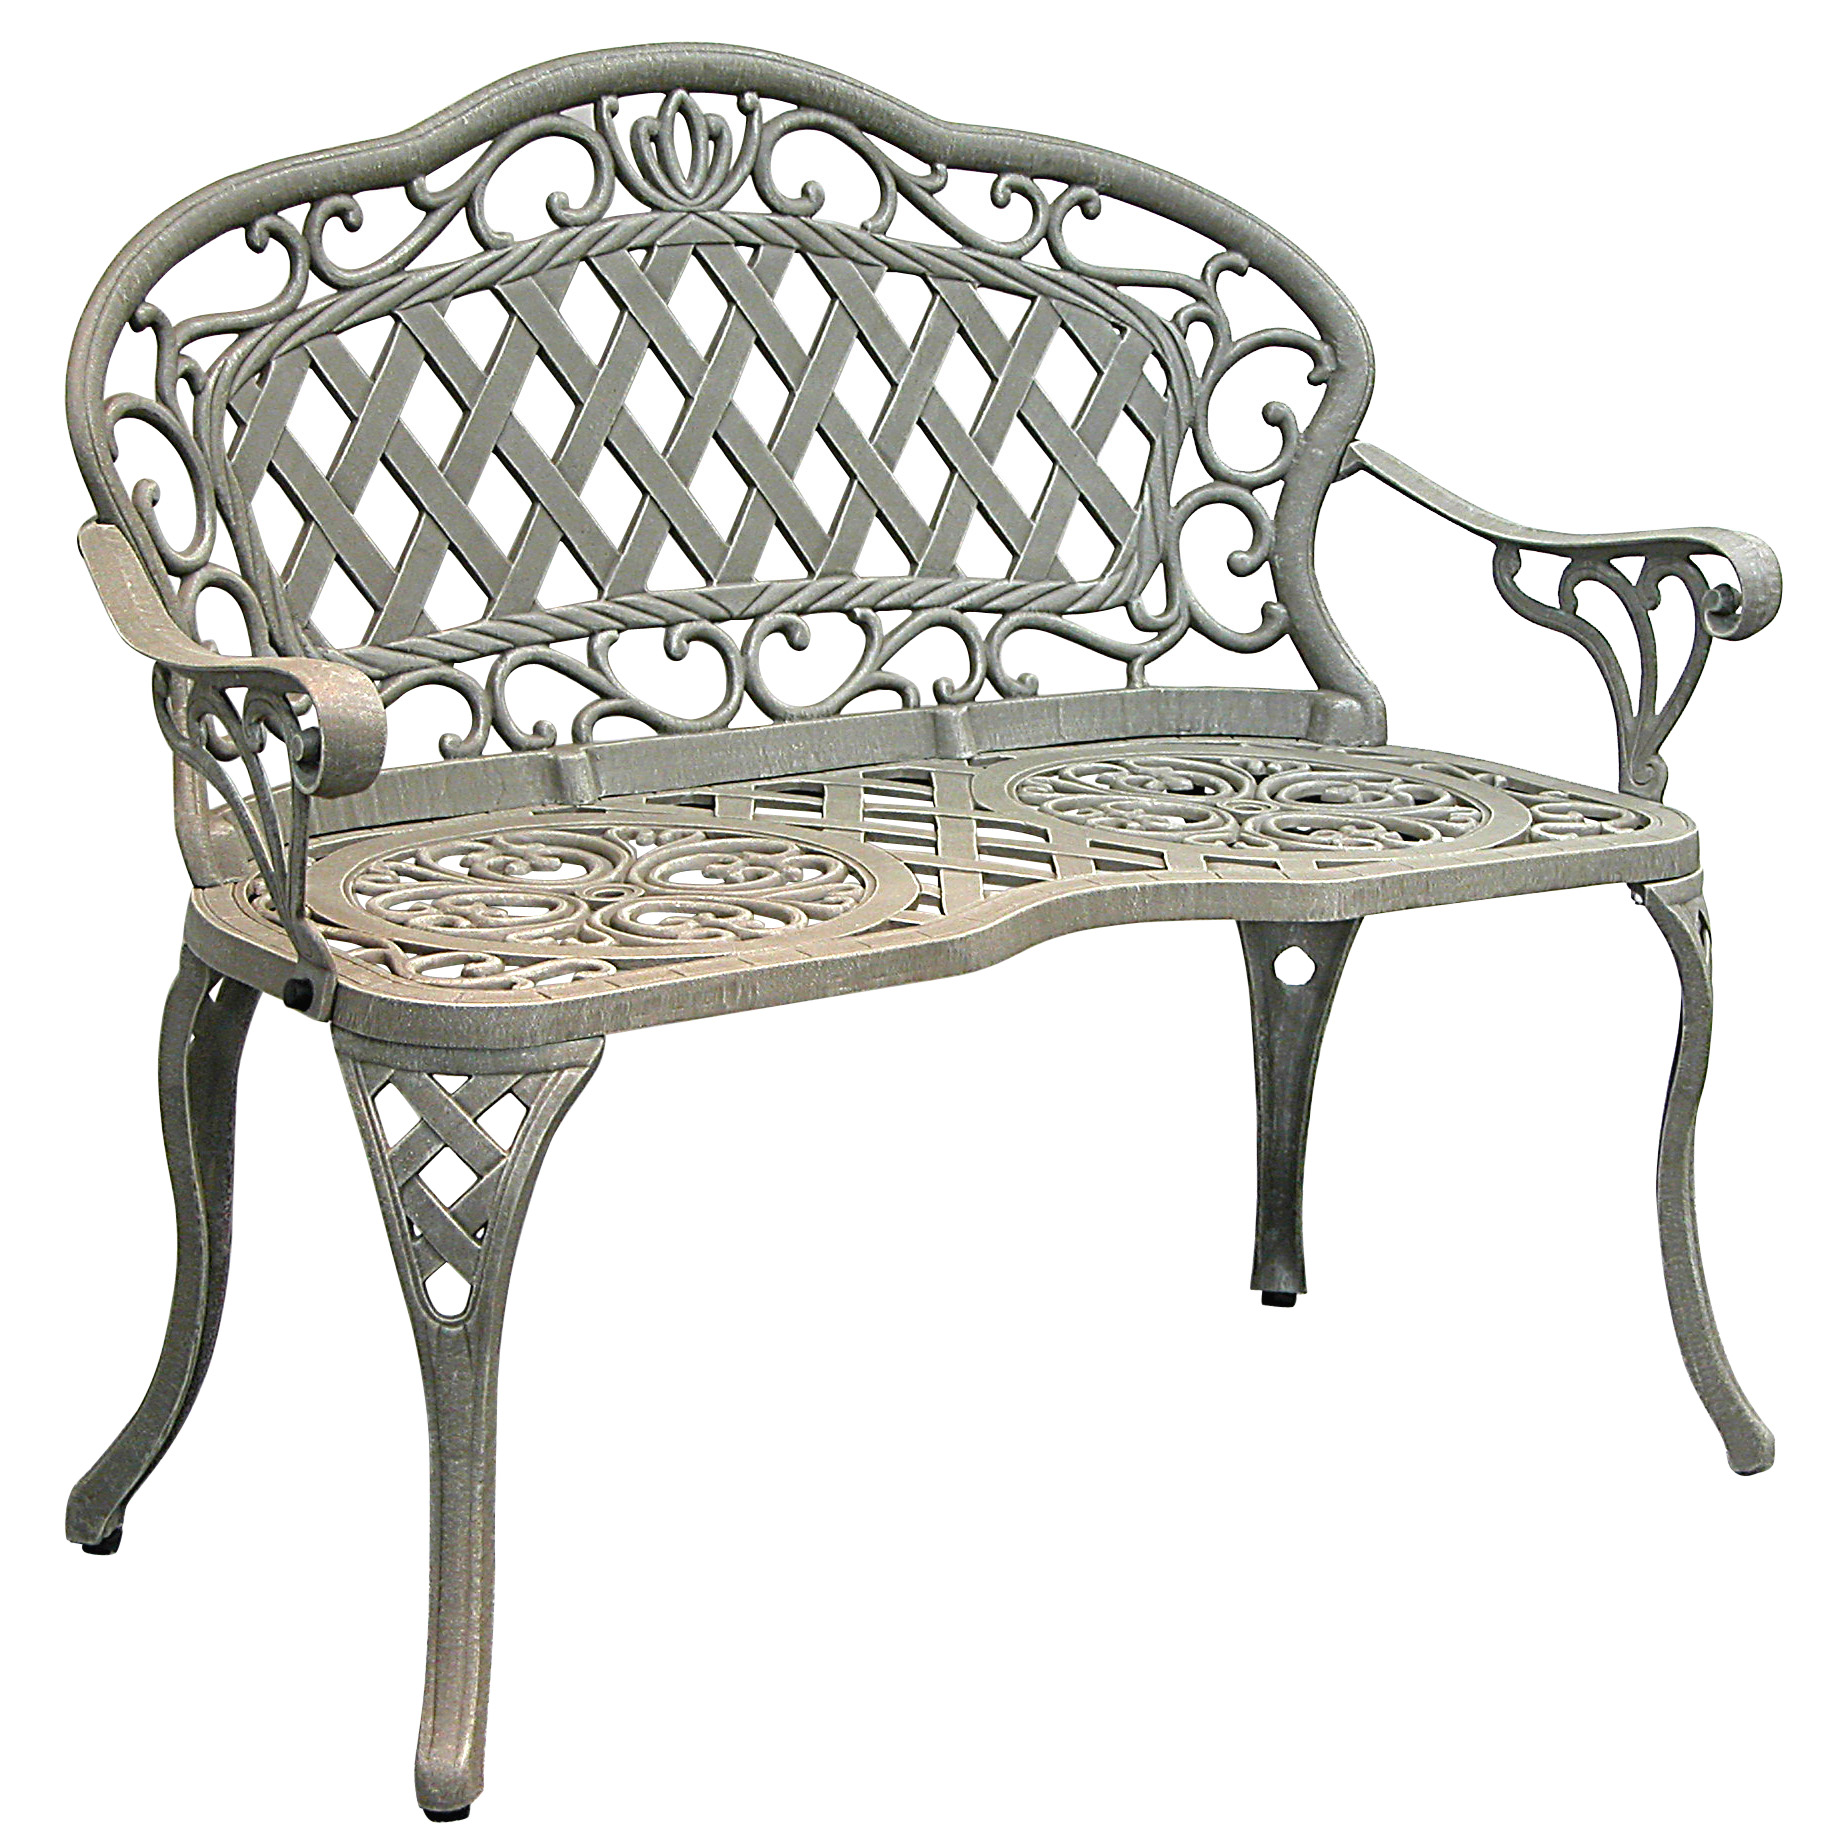 Patio furniture bench cast aluminum iron loveseat regis Cast iron garden furniture